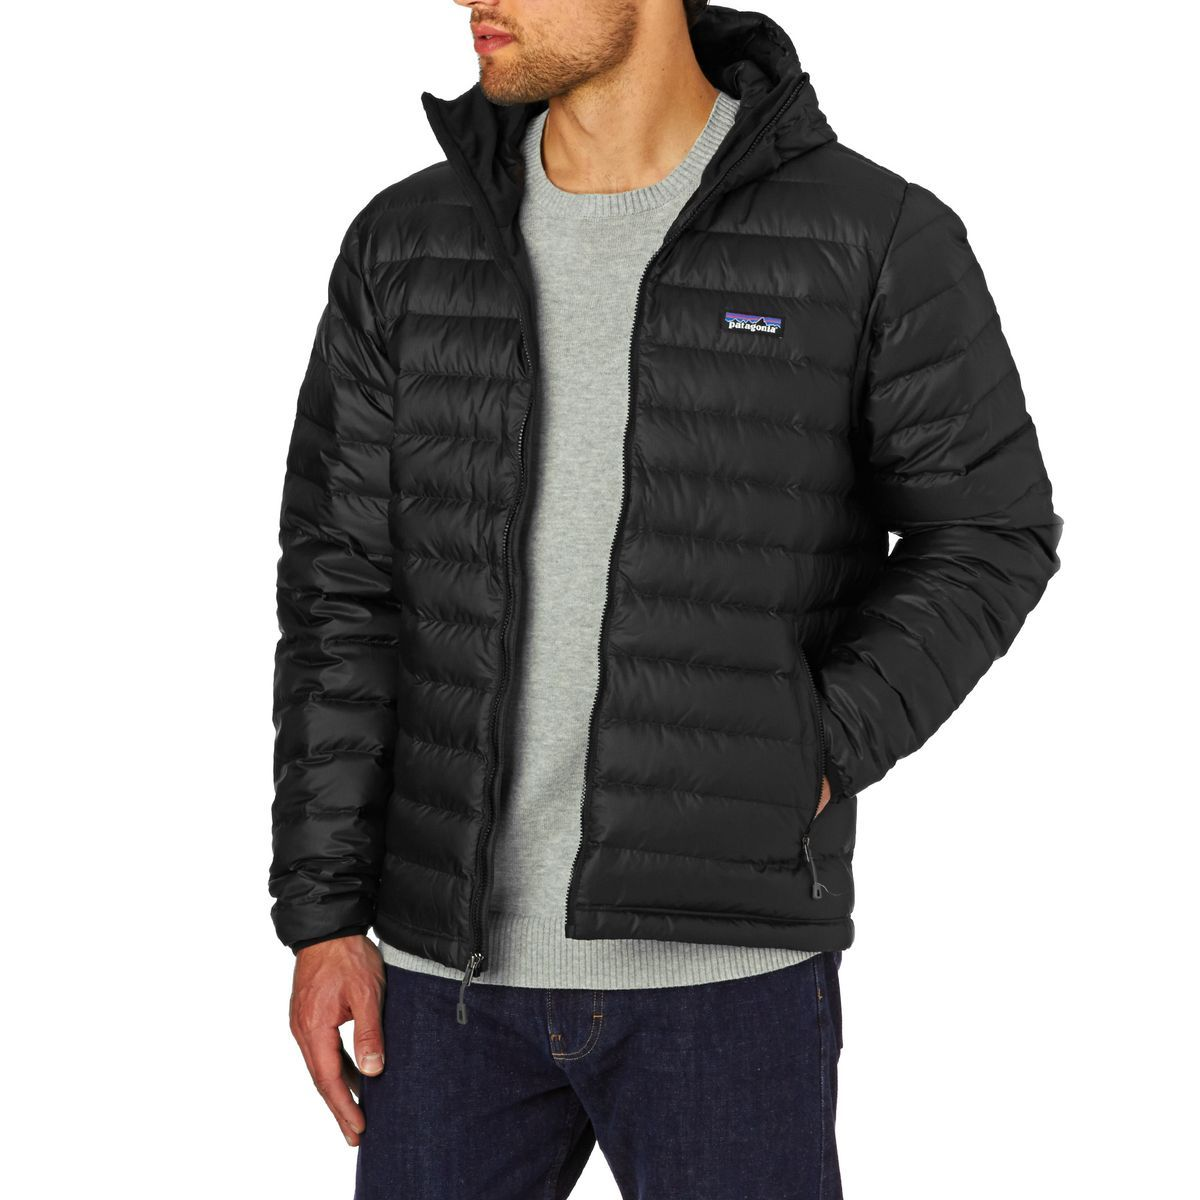 Mens Jackets & Coats | Free Delivery available at Surfdome